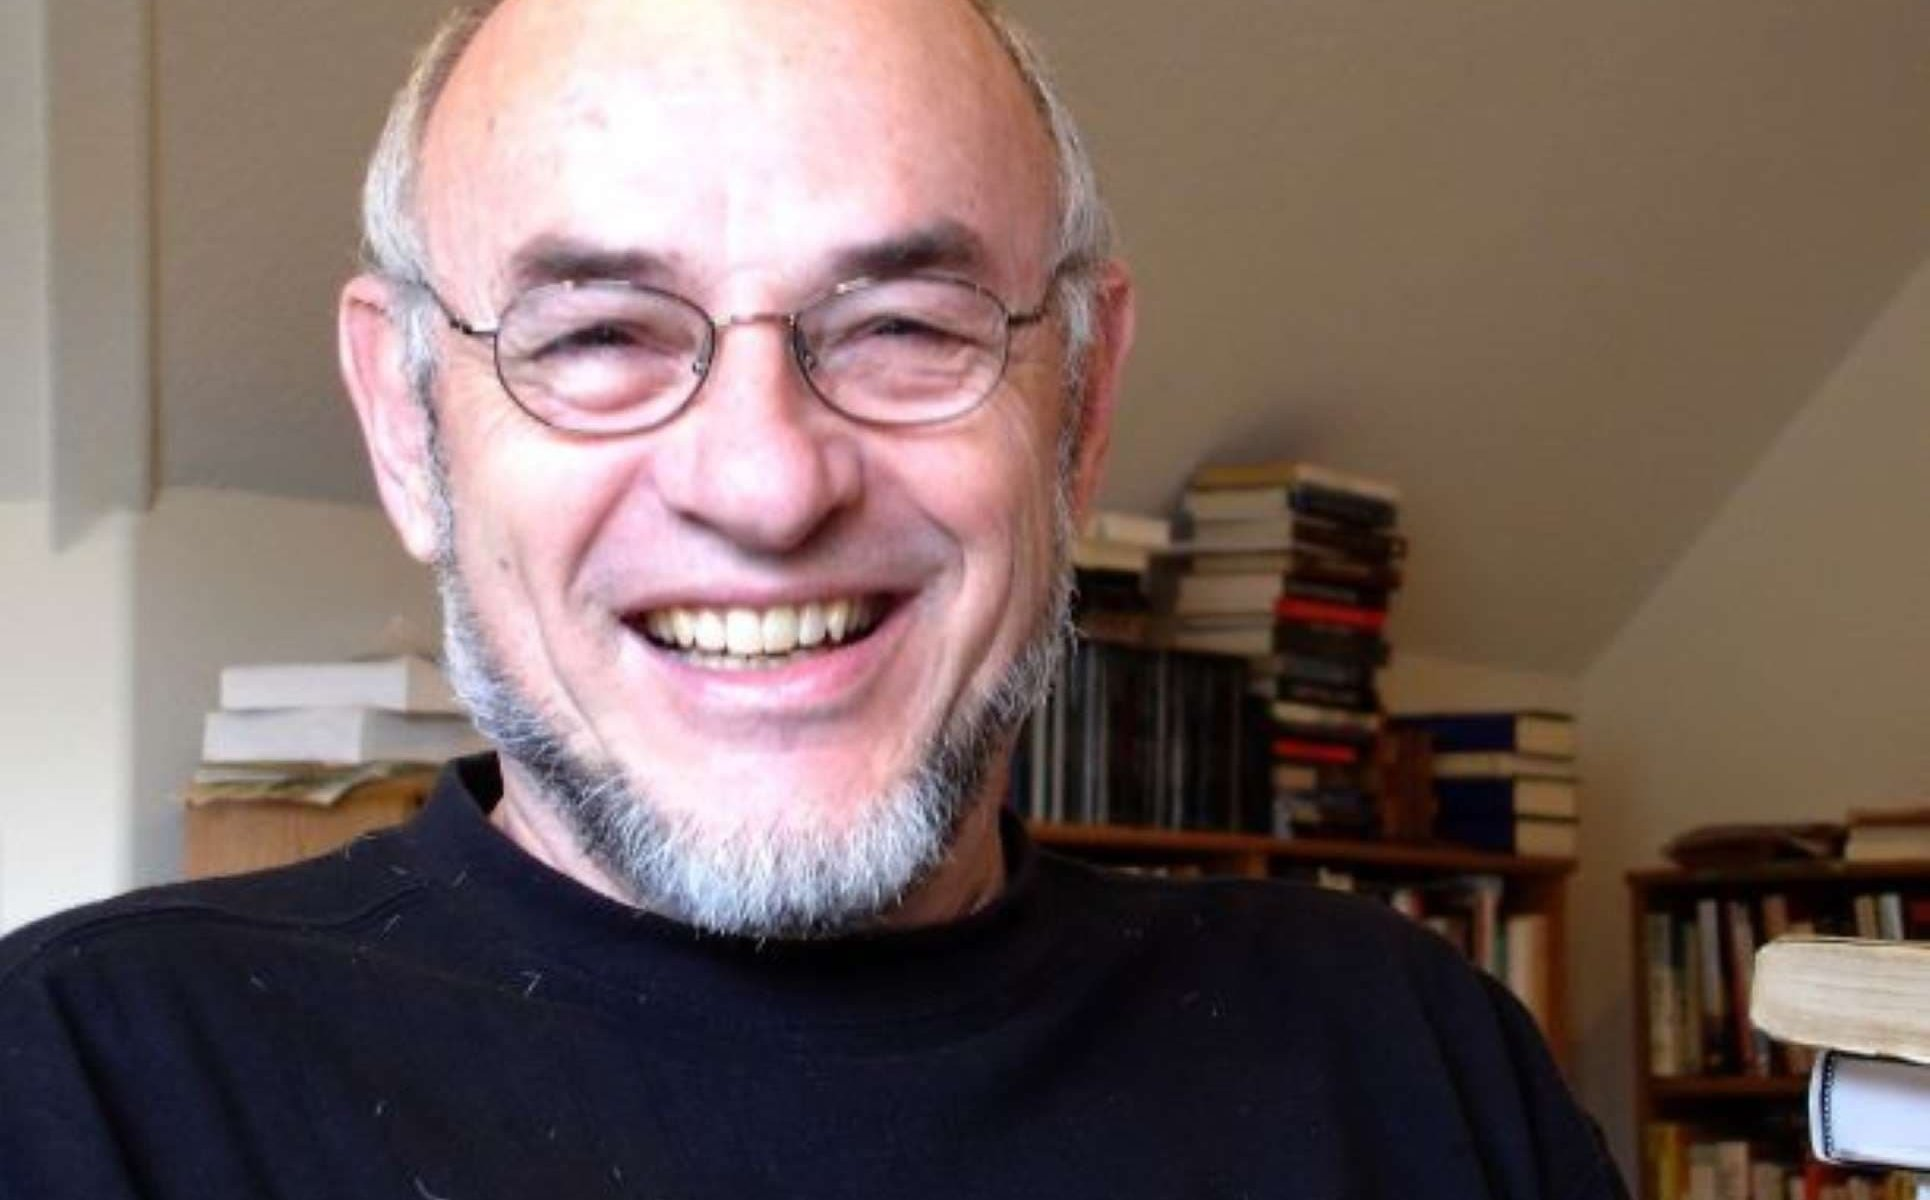 A headshot of author Richard Etulain smiling while wearing wire-rimmed glasses and a black mock neck